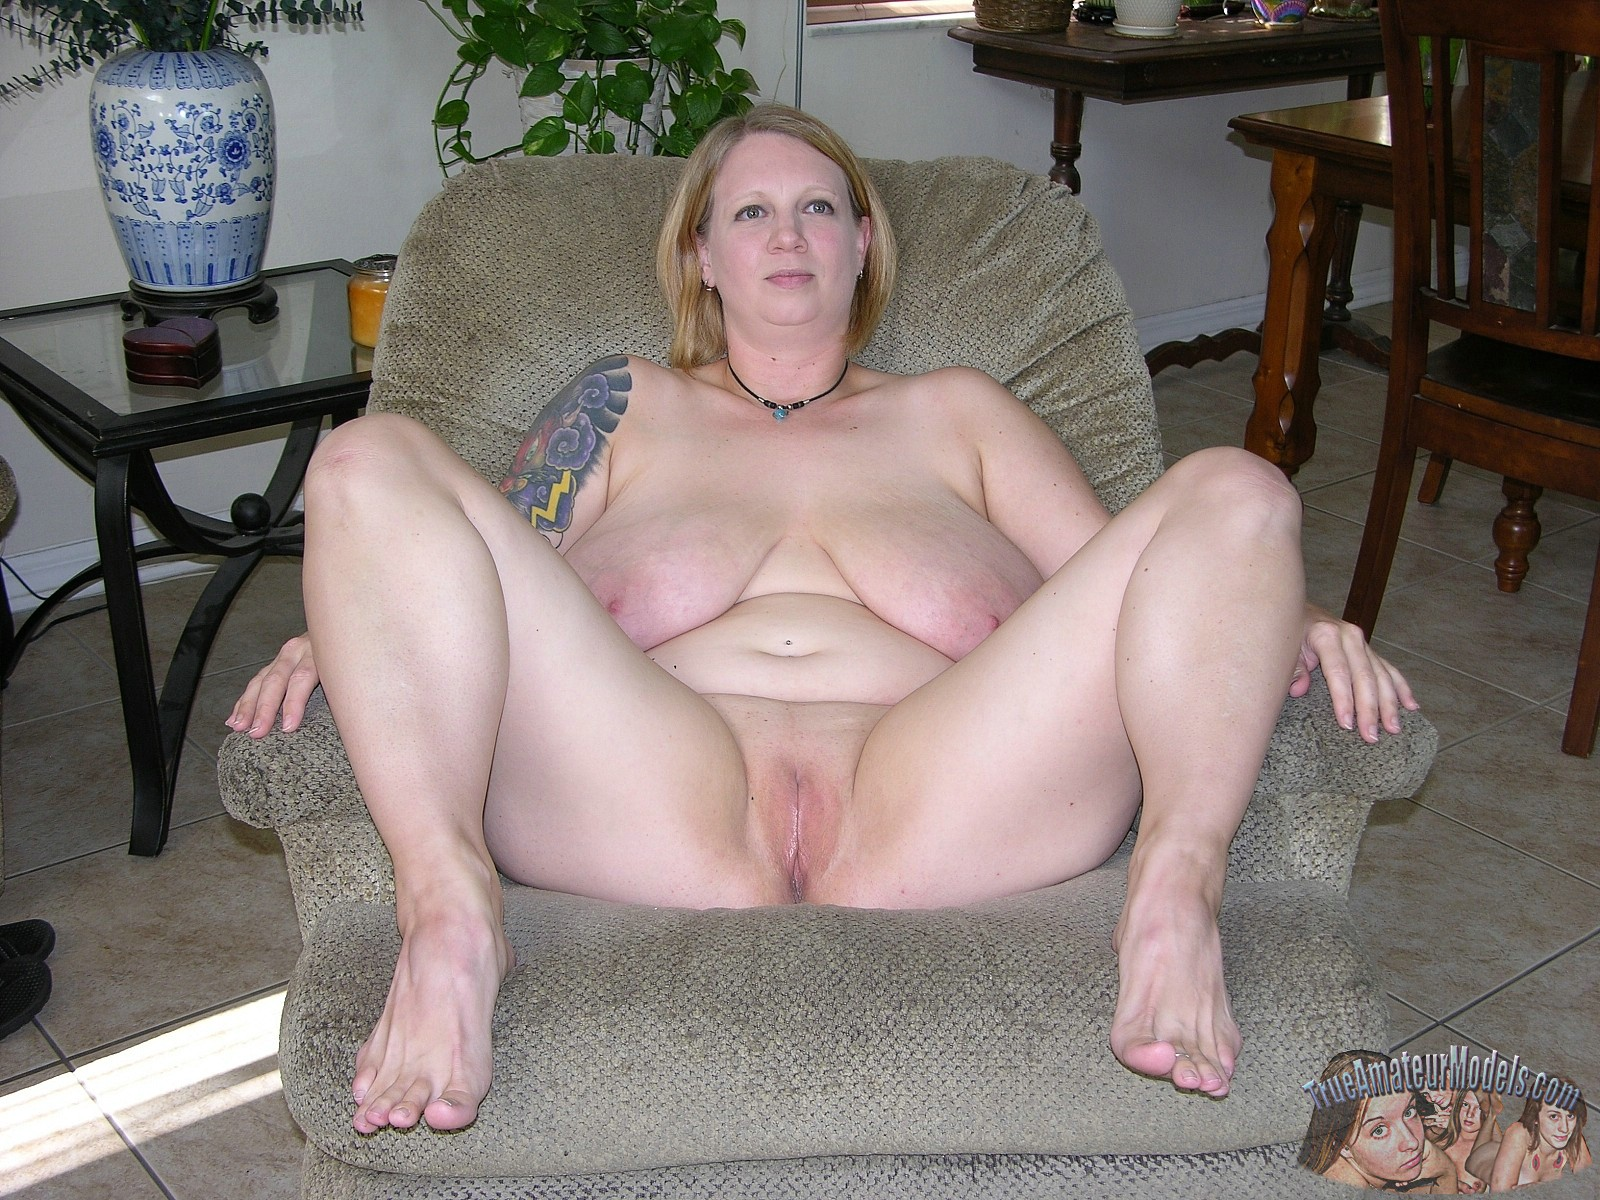 Midget women creampies